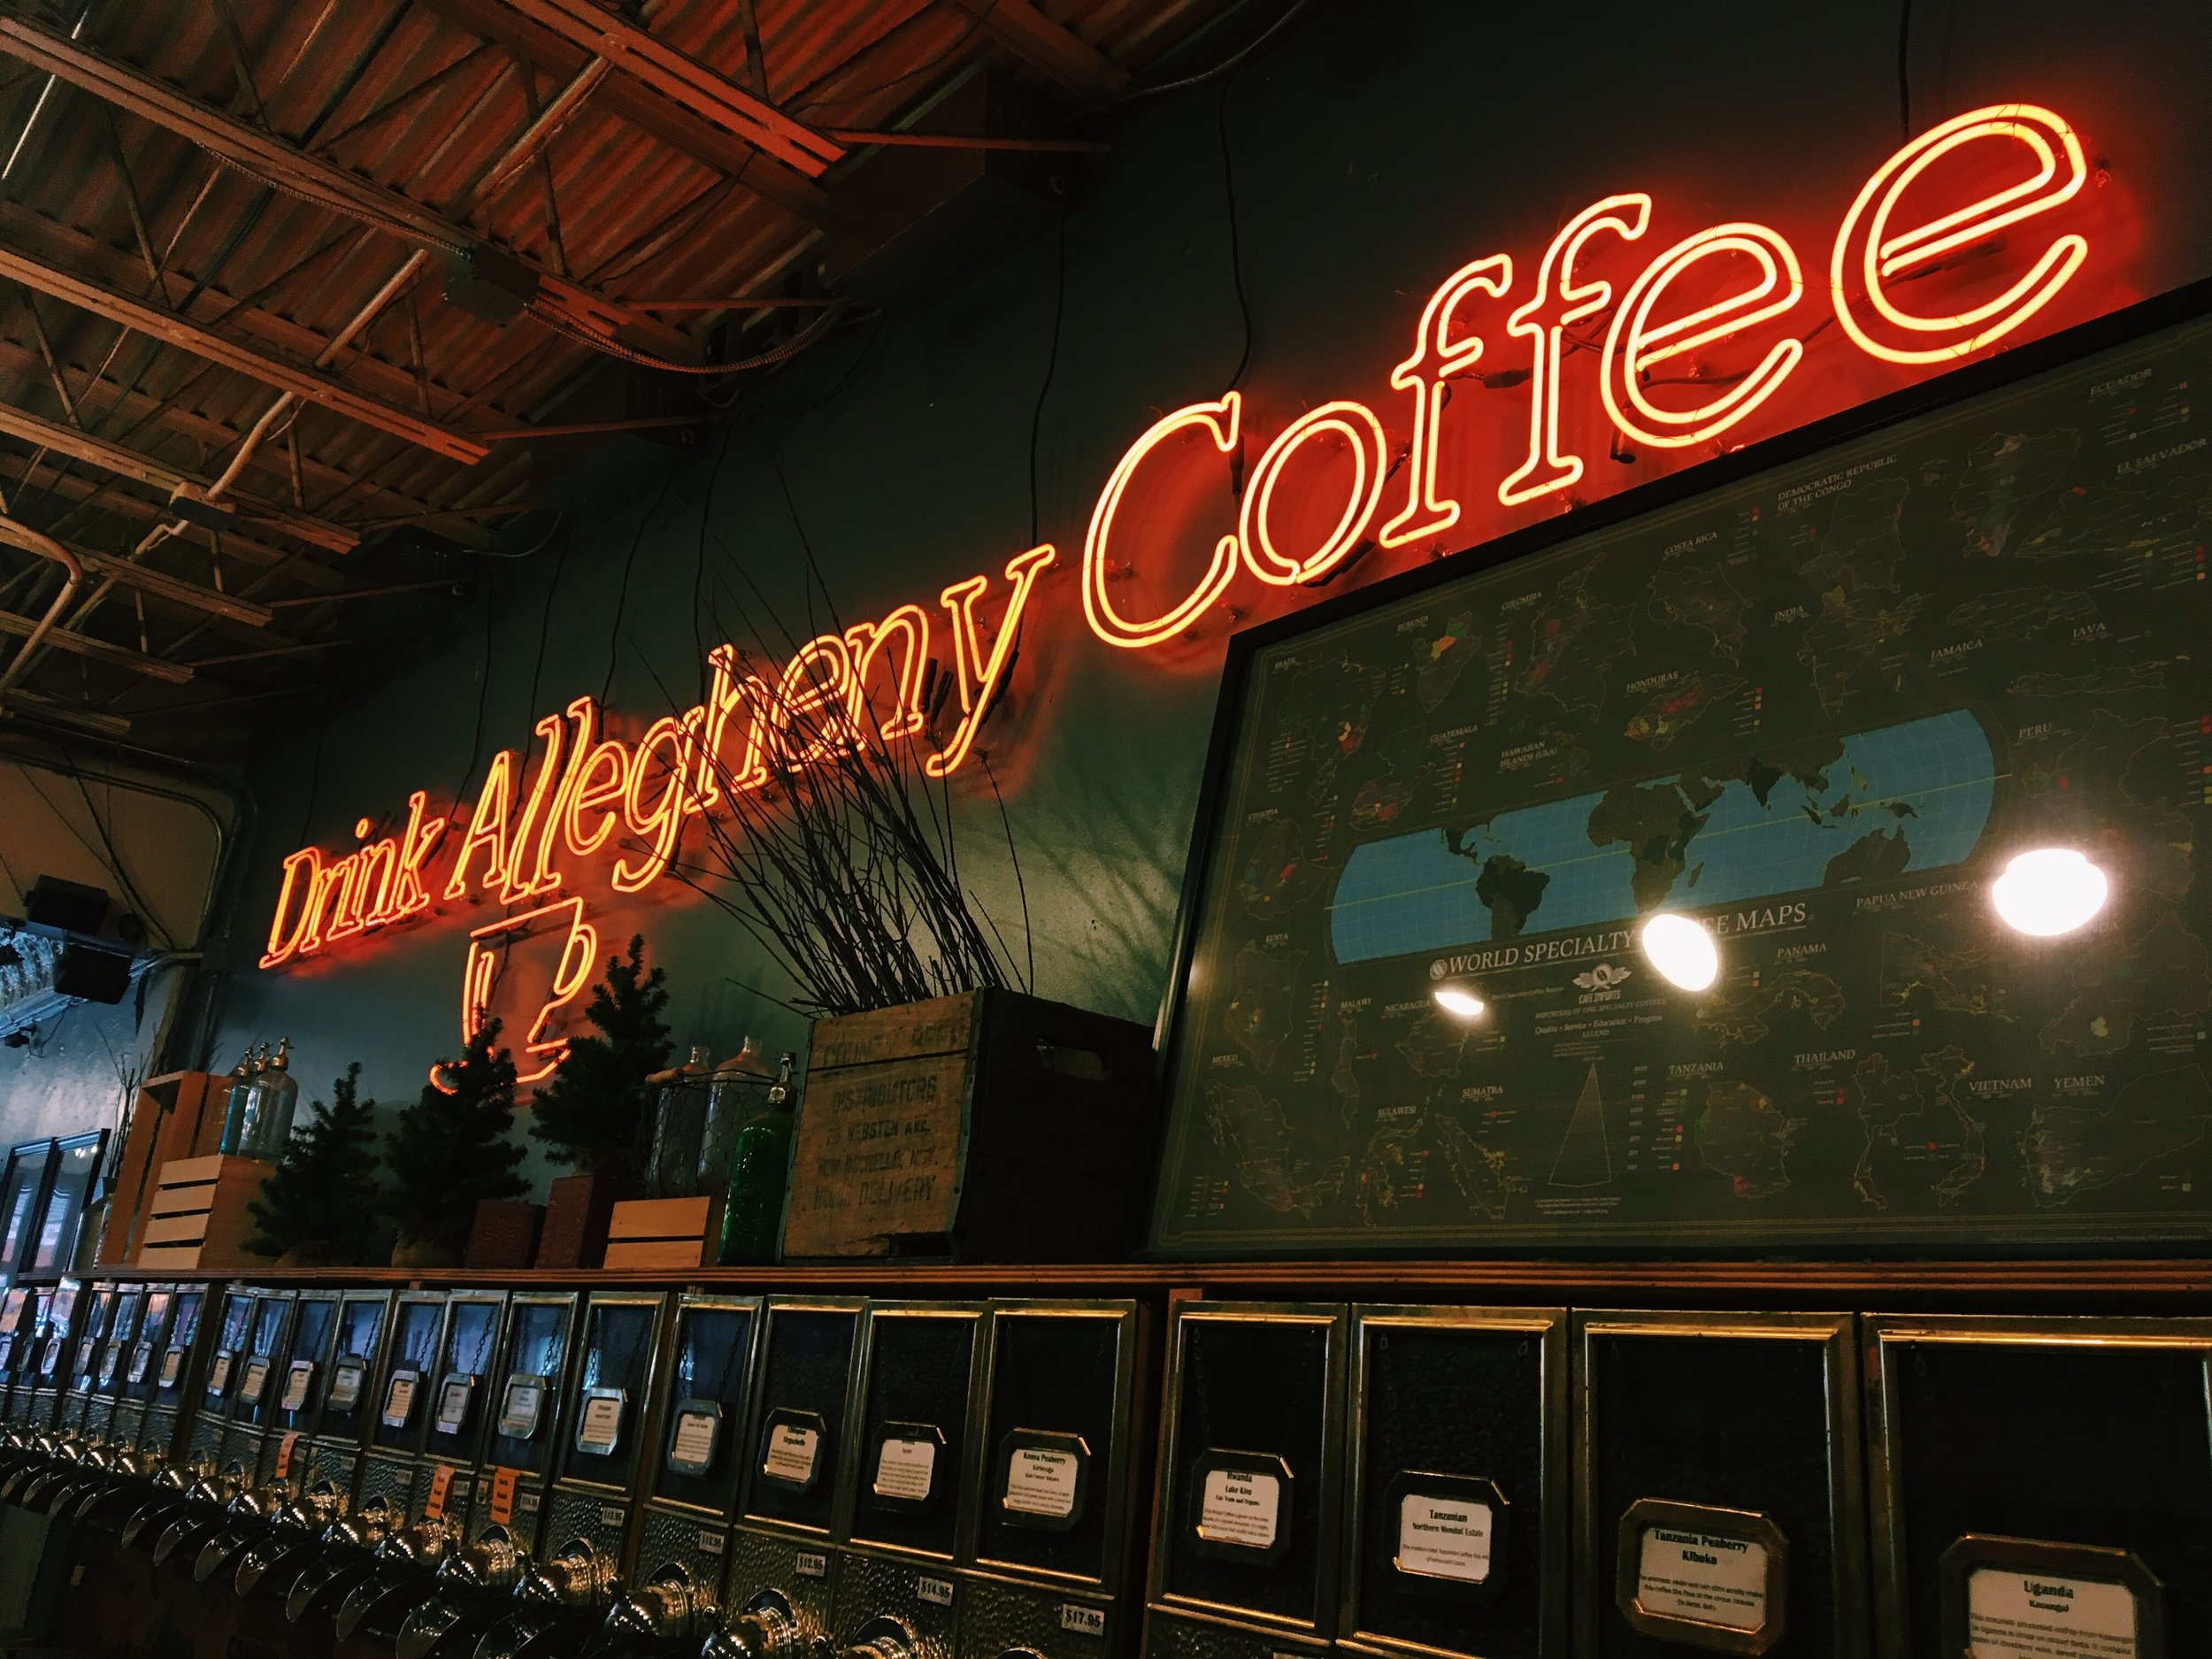 strip allegheny coffee co.JPG